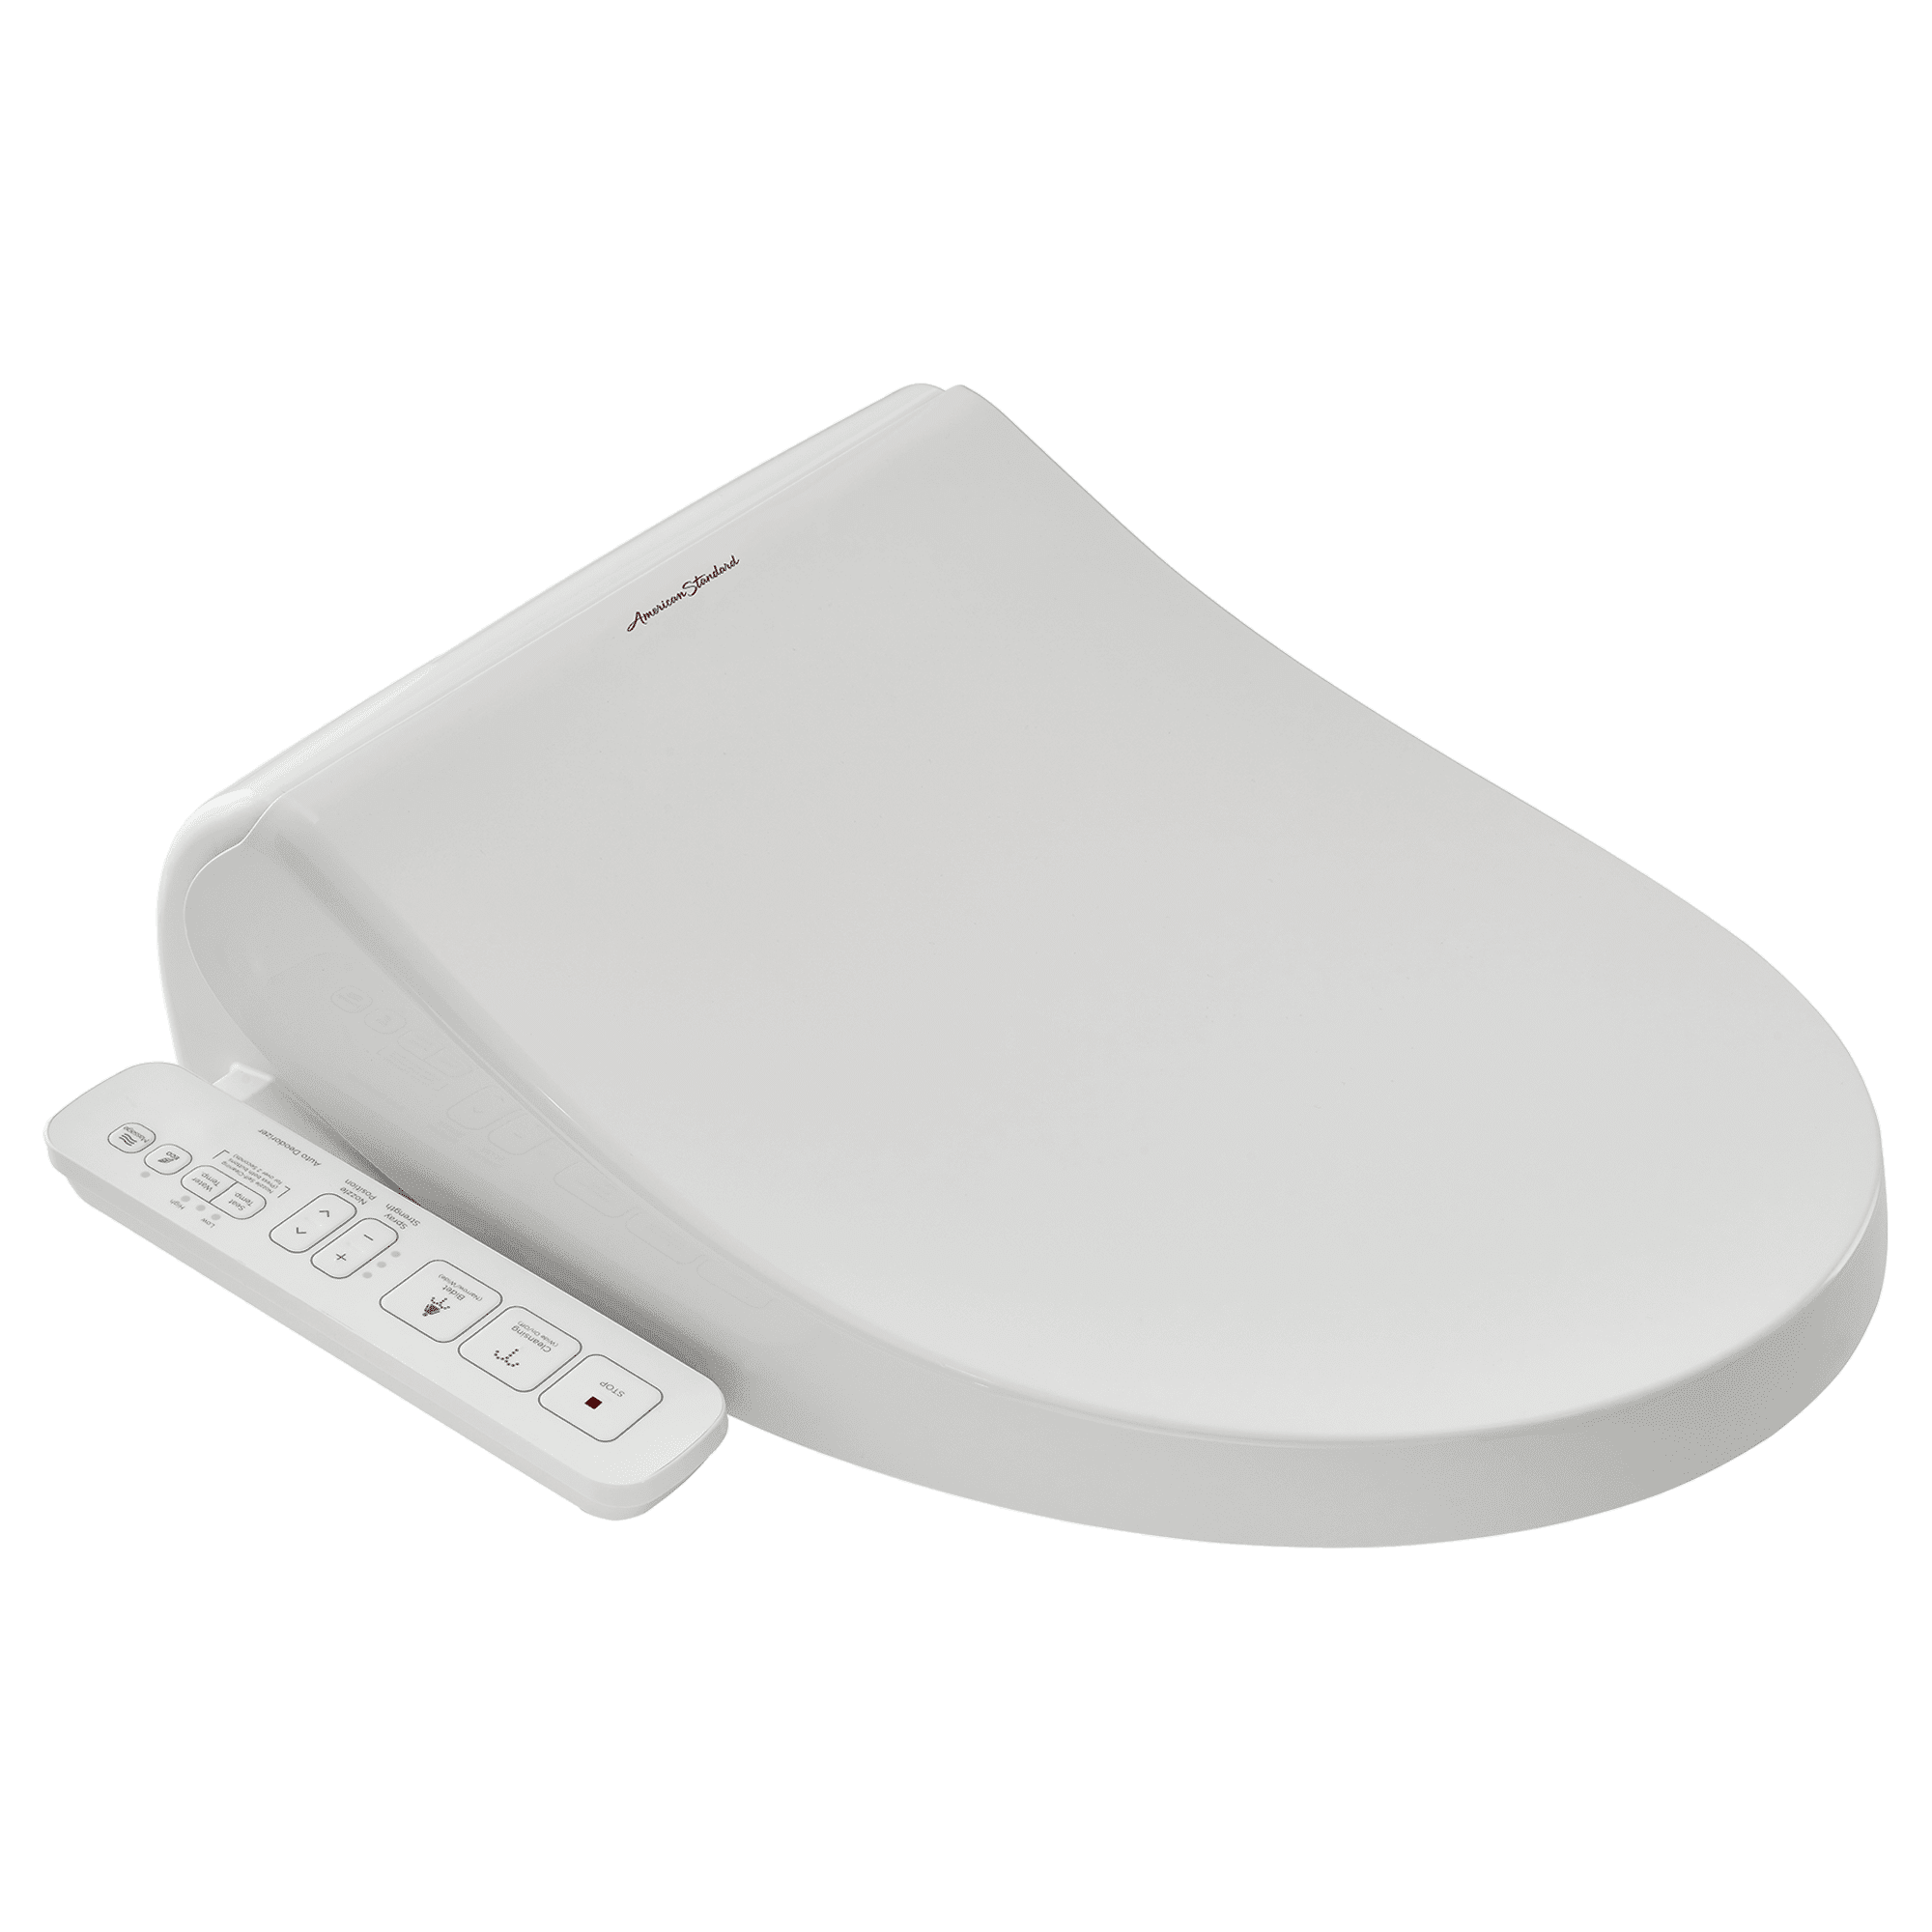 American Standard Advanced Clean AC 1.0 SpaLet Bidet Seat with Side Panel Operation in White